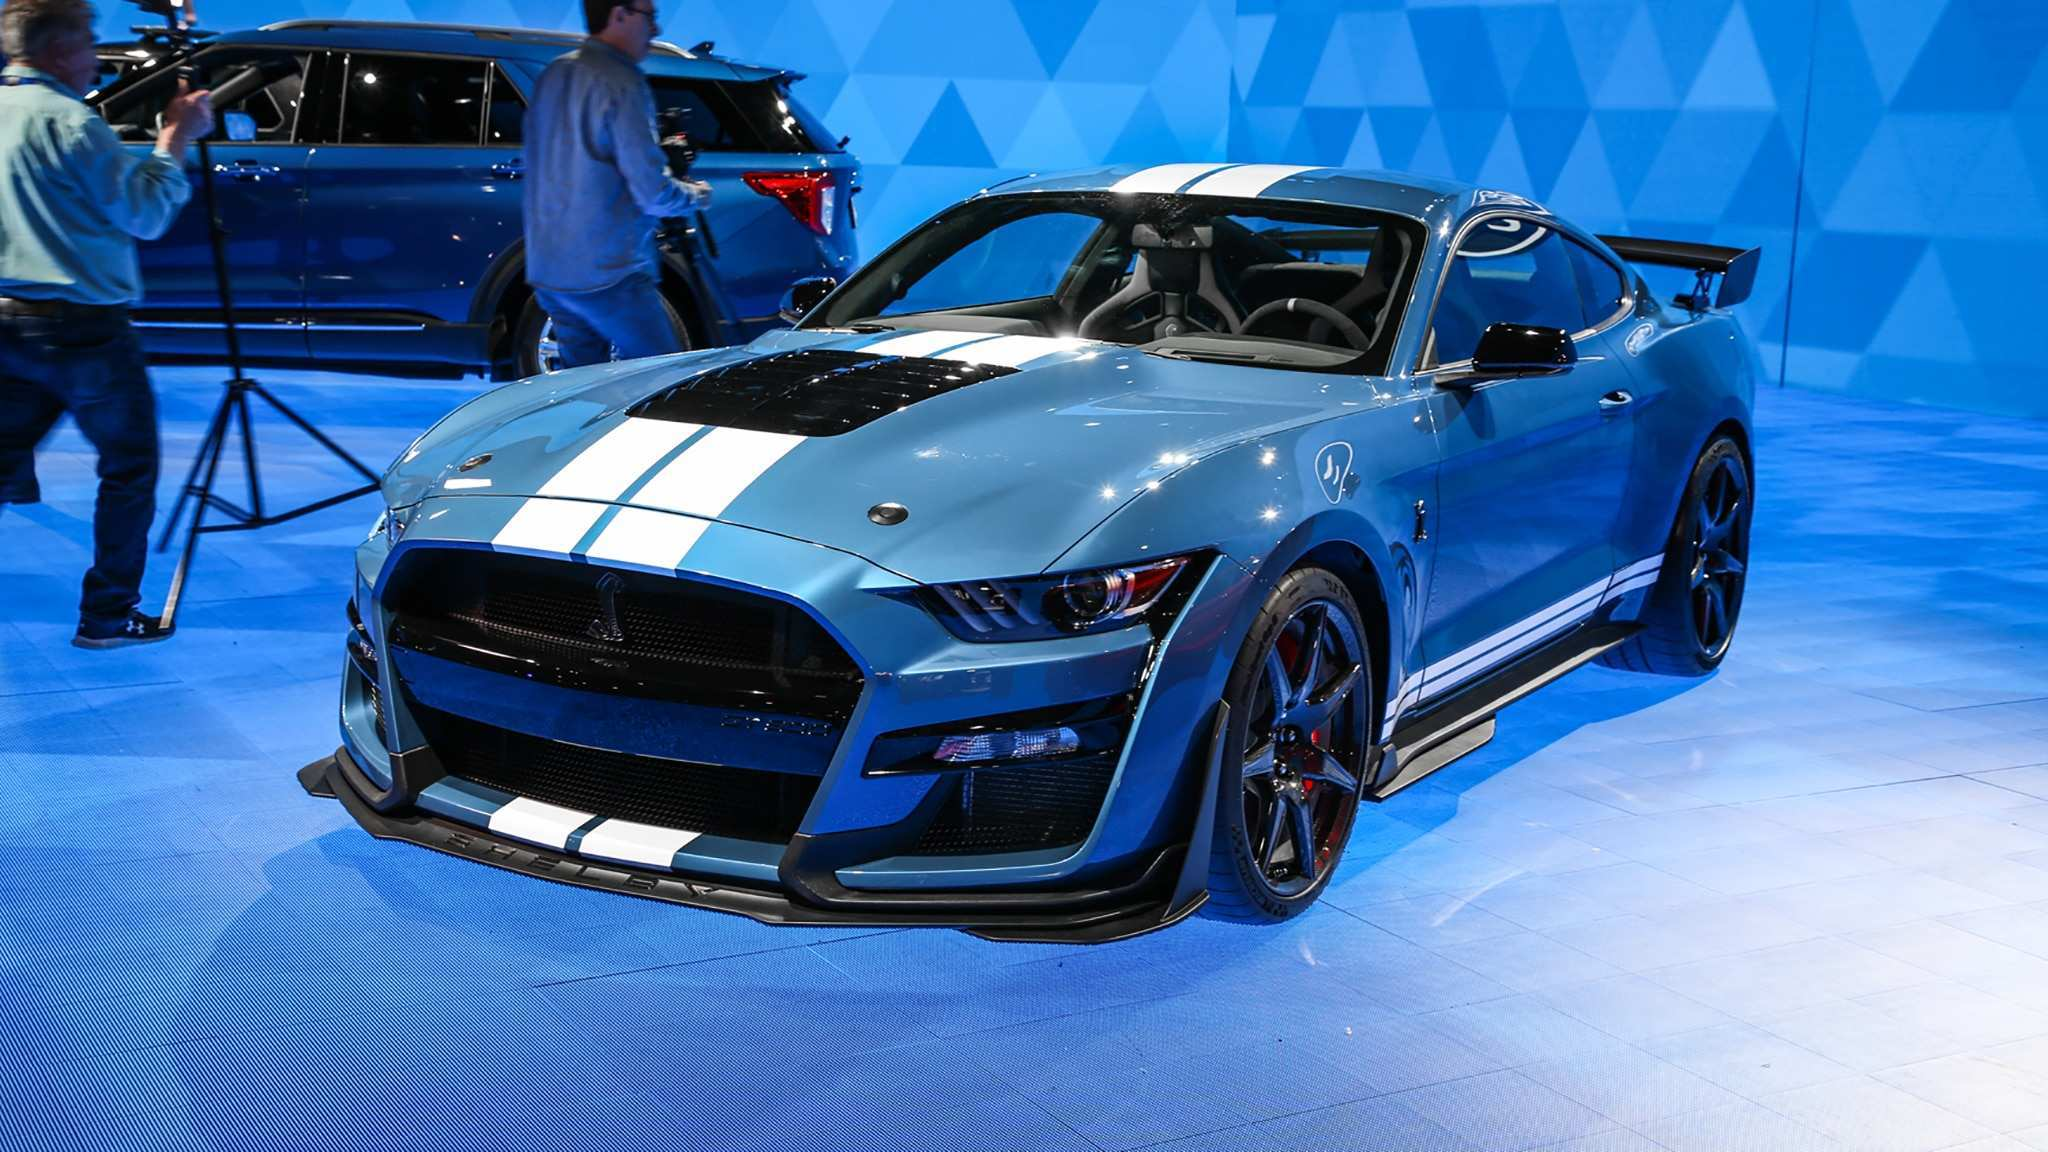 83 All New 2020 Ford Shelby Gt500 Price Price Design And Review